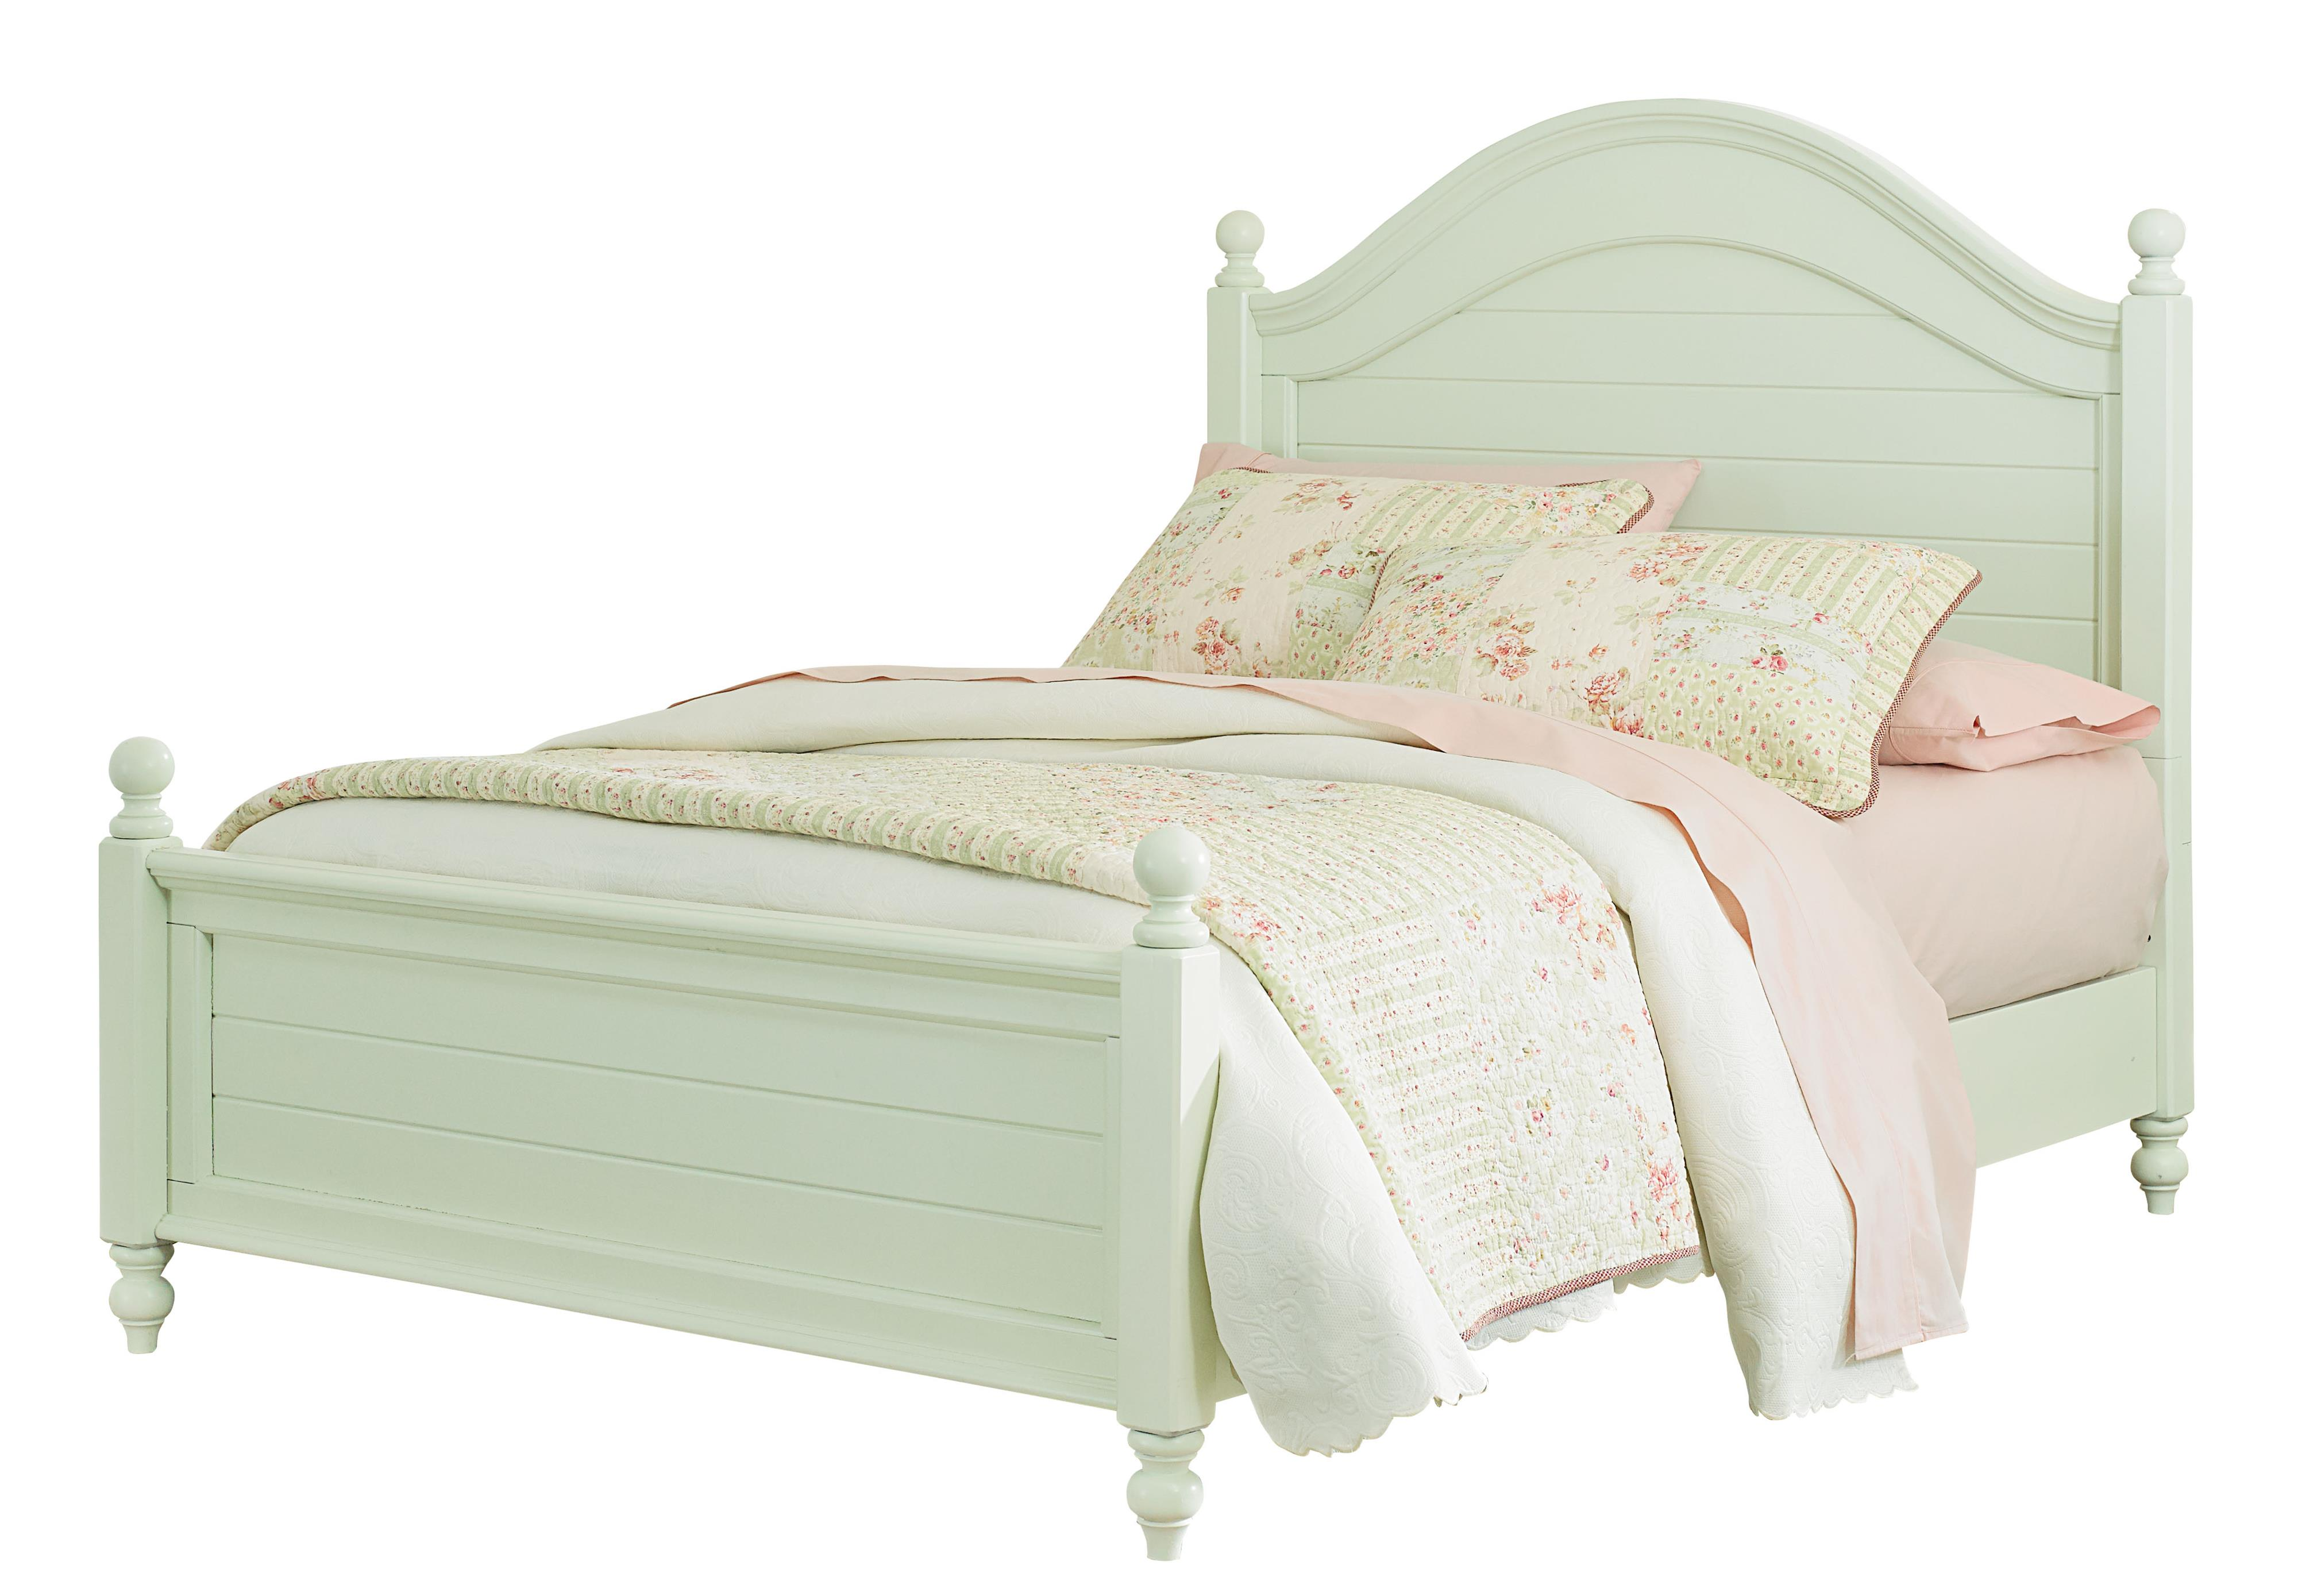 Standard Furniture Camellia Mint Twin Bed with Cannonball Bed Posts - Item Number: 95221+22+23